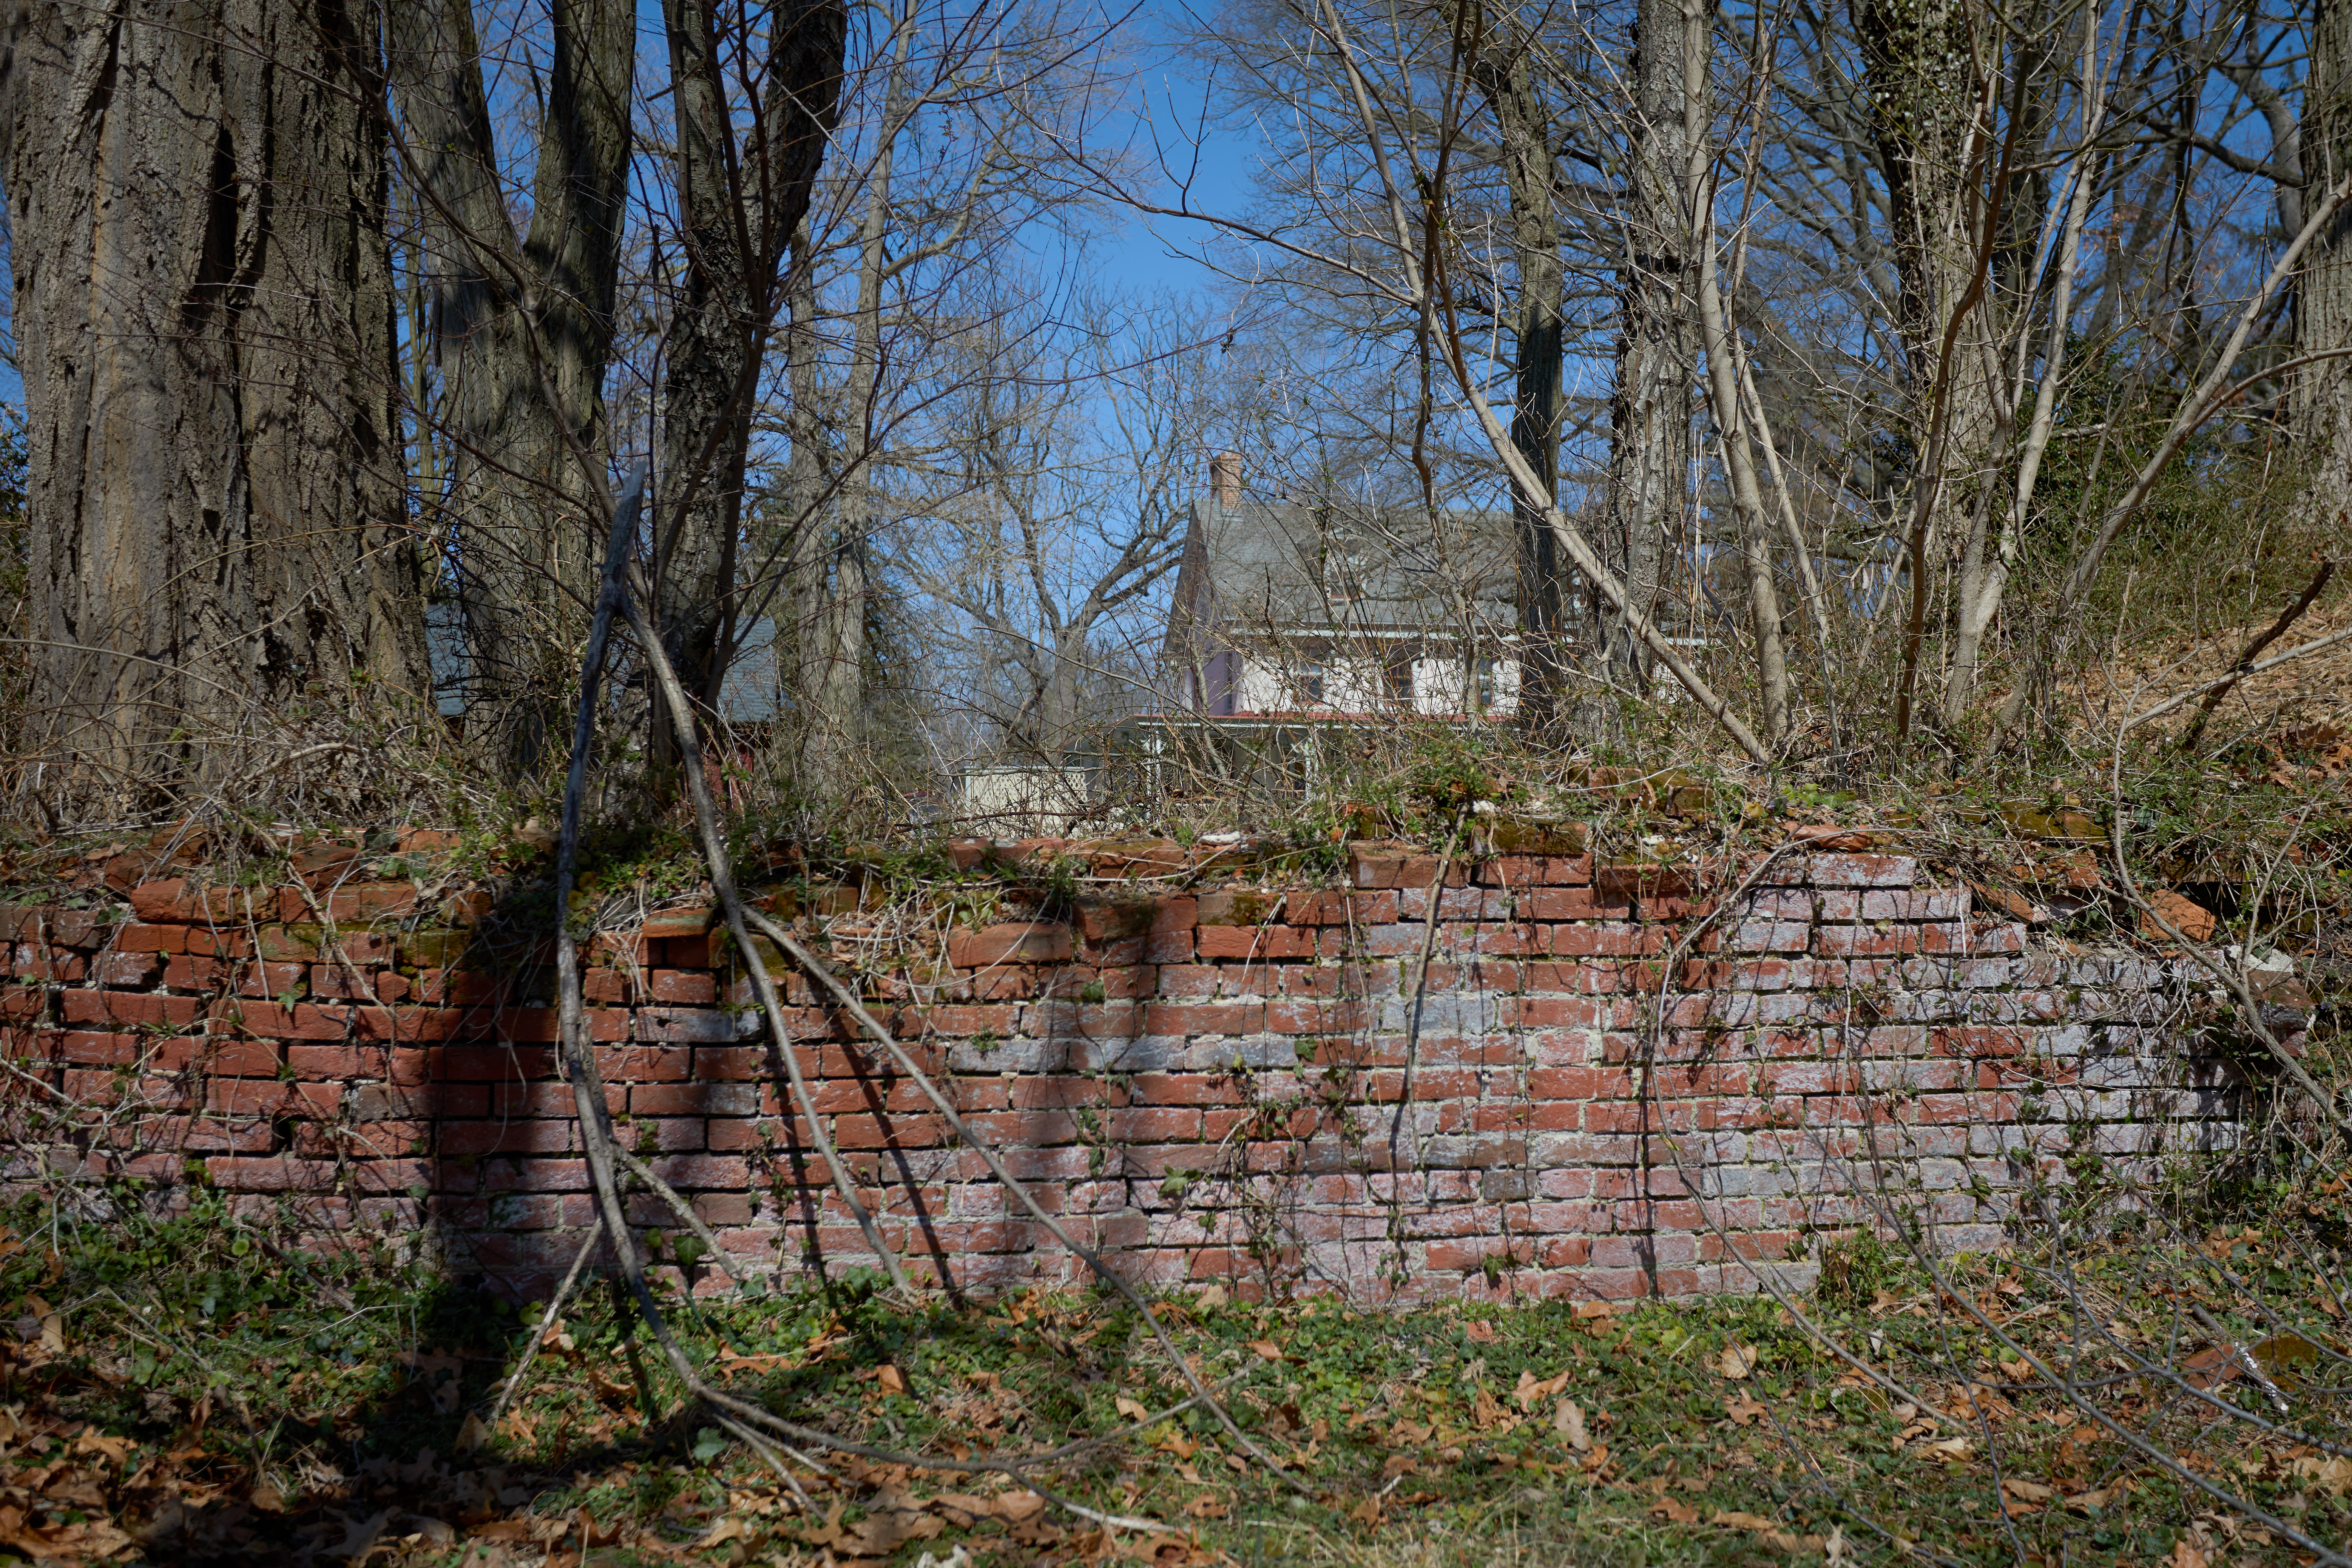 Remnants of brick wall with mansion in distance.